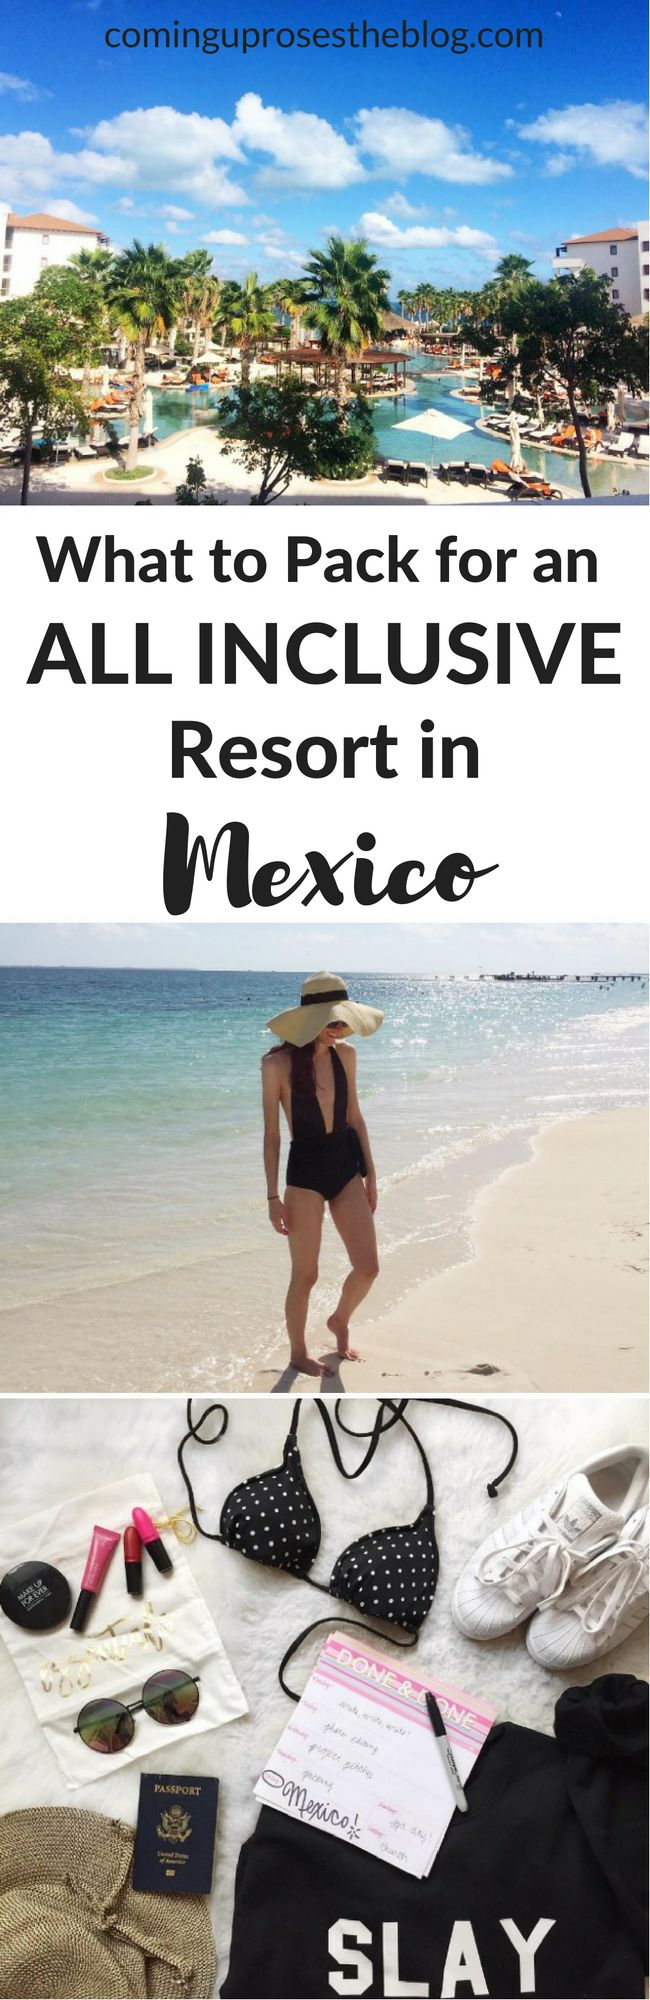 What to pack for Mexico, what NOT to pack, and what you'll likely forget to pack (but shouldn't!) for an All-Inclusive Resort in Mexico, what to pack for vacation, what to pack for mexico, what to pack for mexico all inclusive, what to pack for mexico vacation, what to pack for mexico clothes